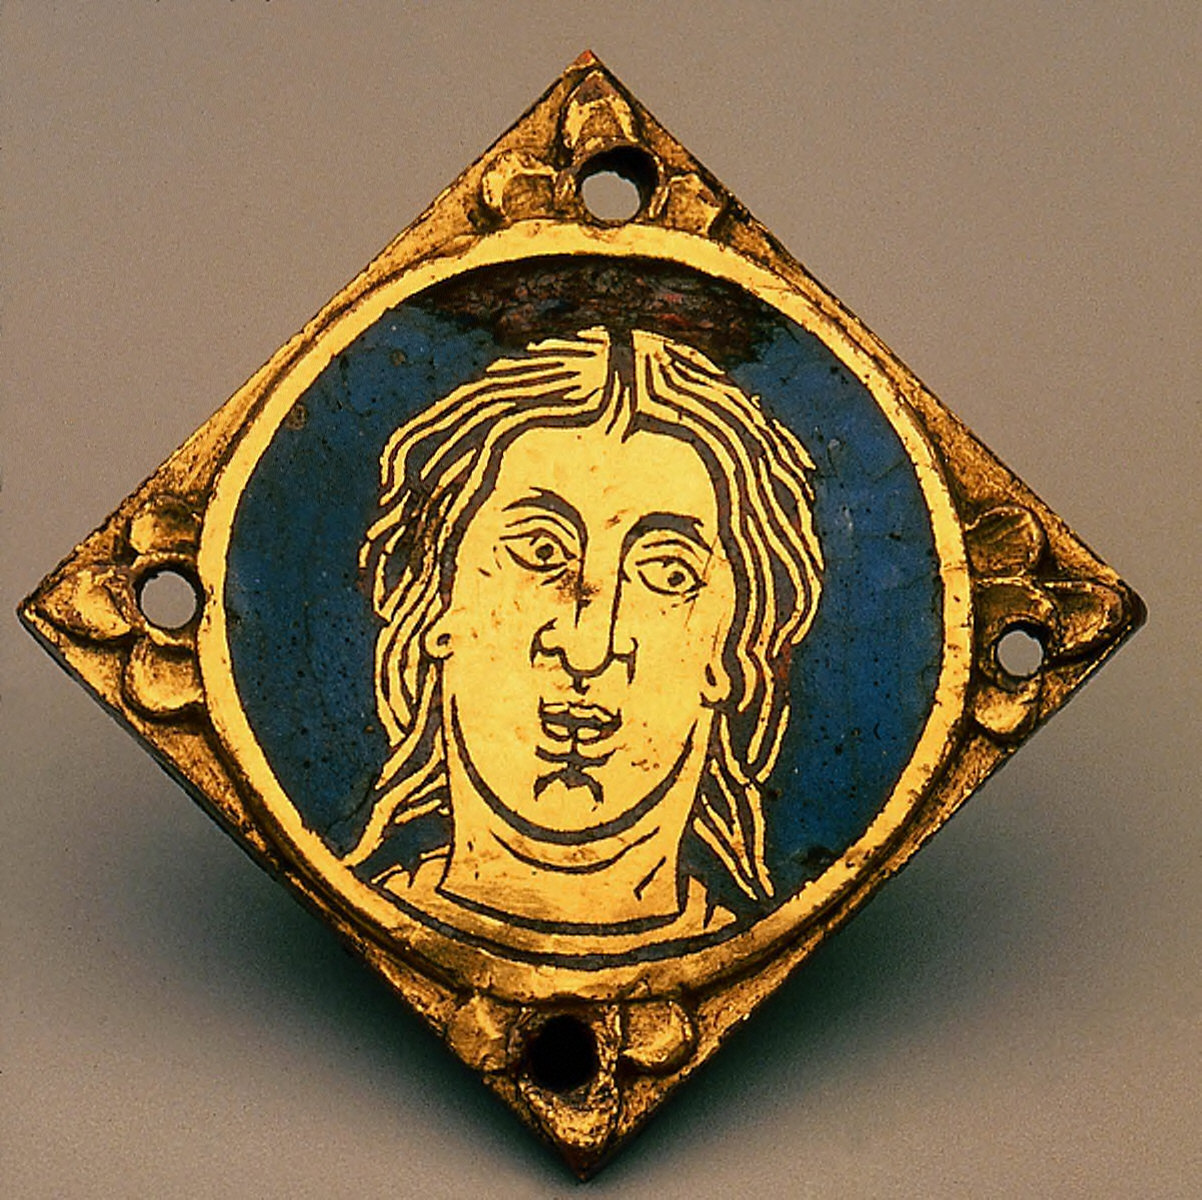 Plaque with Head in Medallion